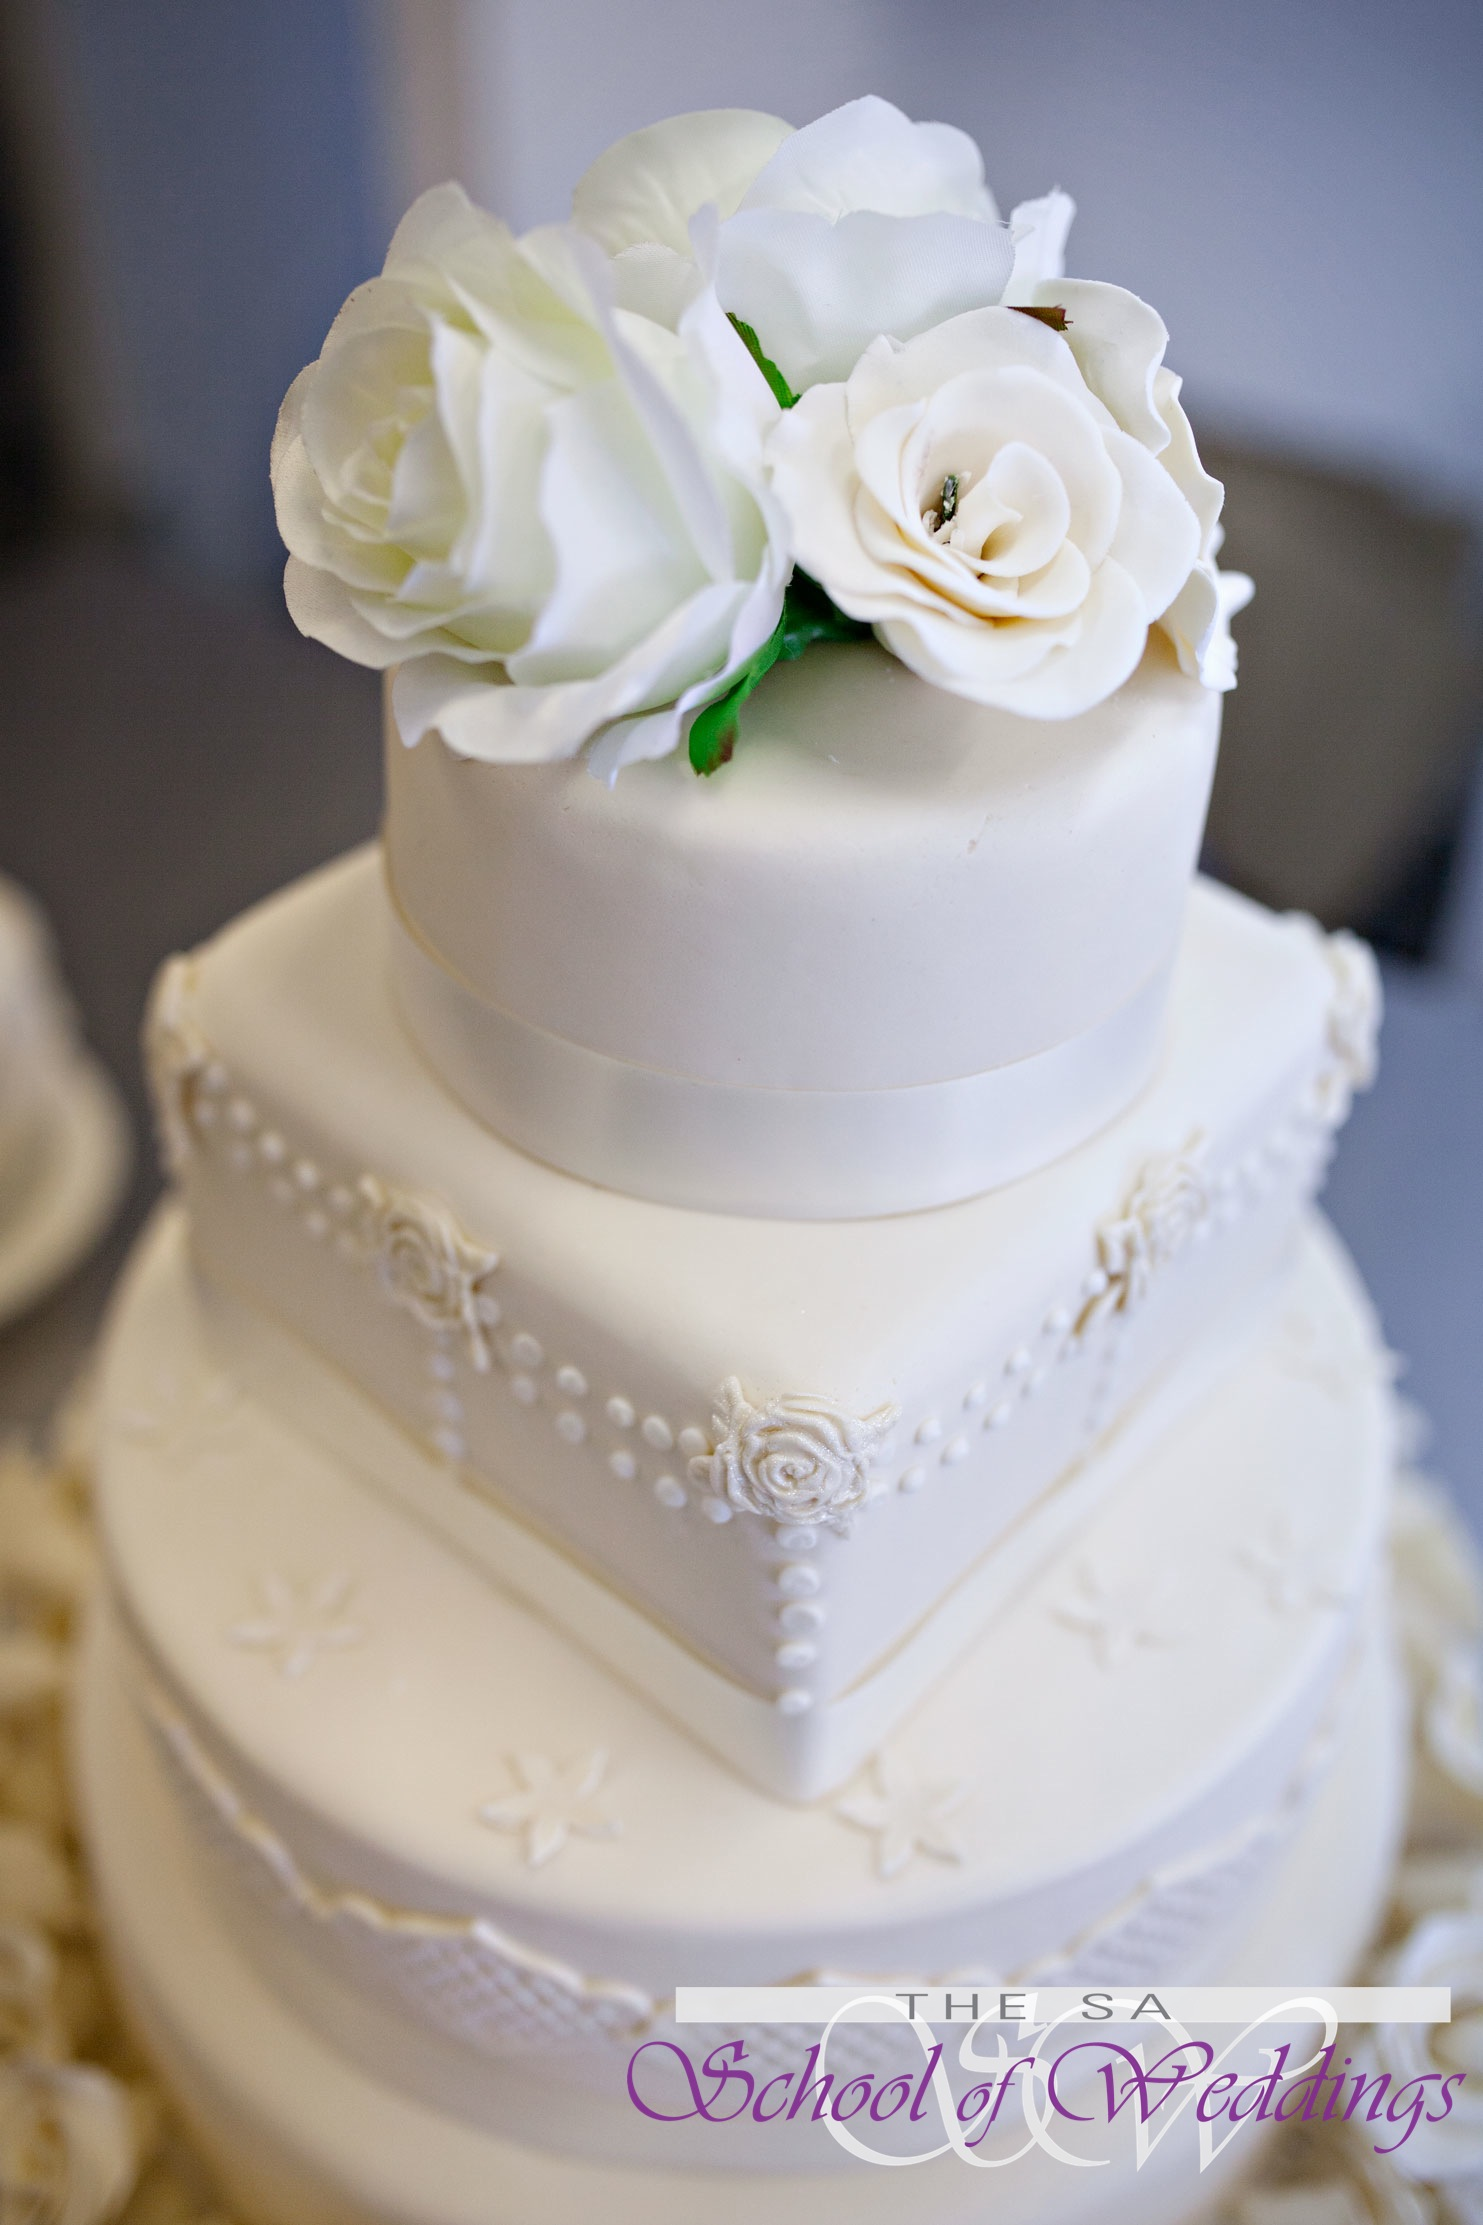 Gallery of Wedding Cakes | Wedding Cakes Courses